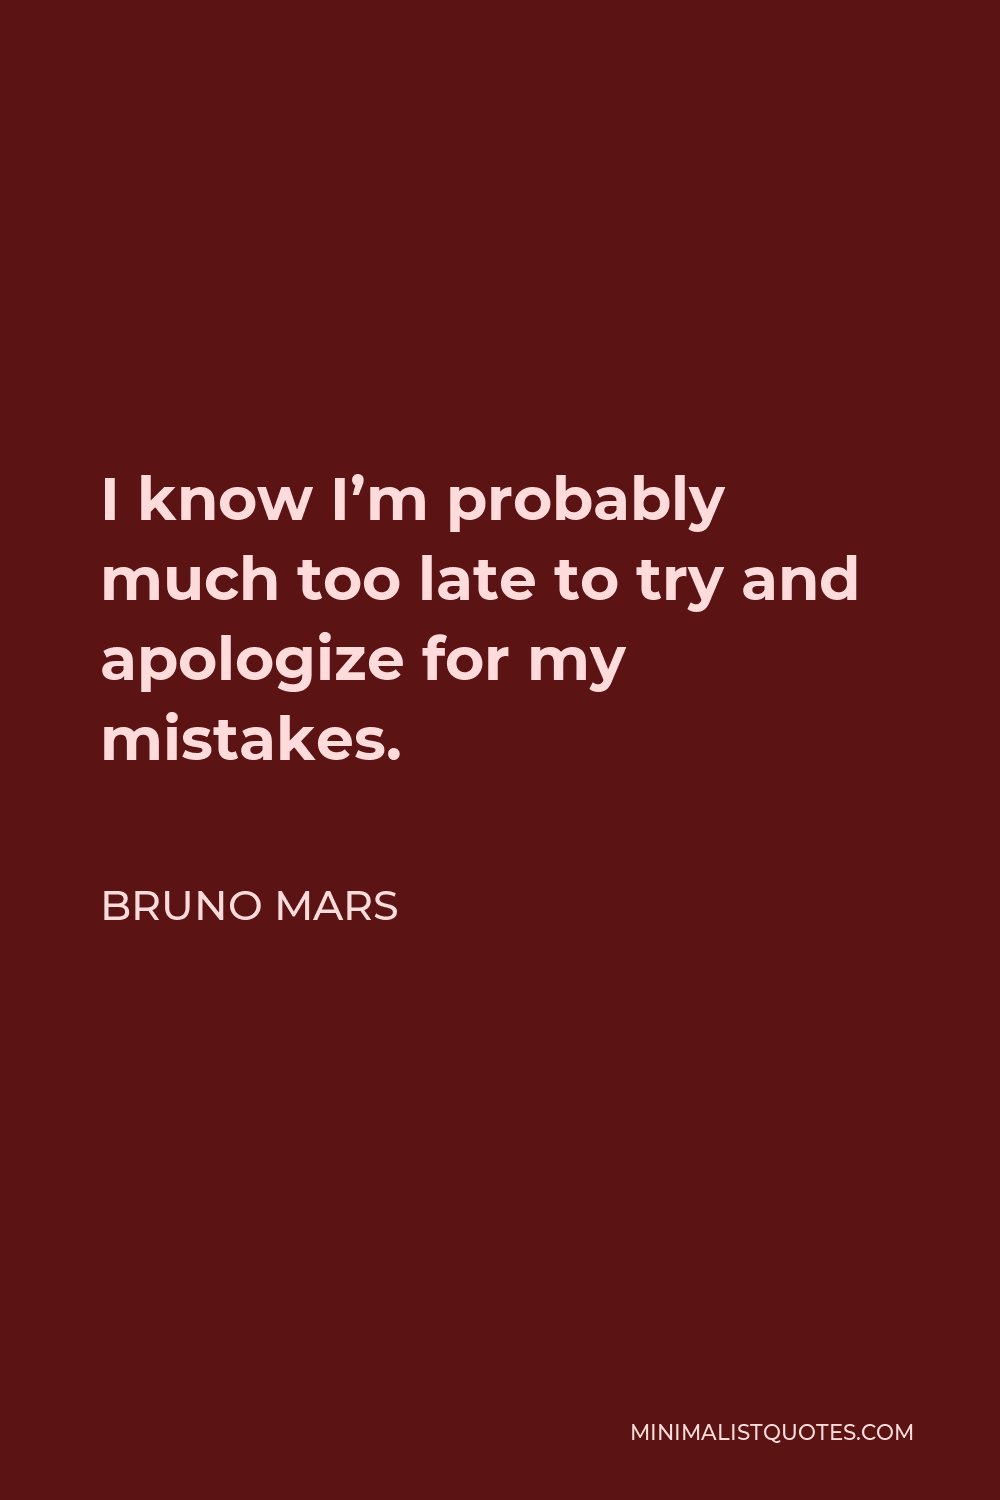 Bruno Mars Quote - I know I'm probably much too late to try and apologize for my mistakes.